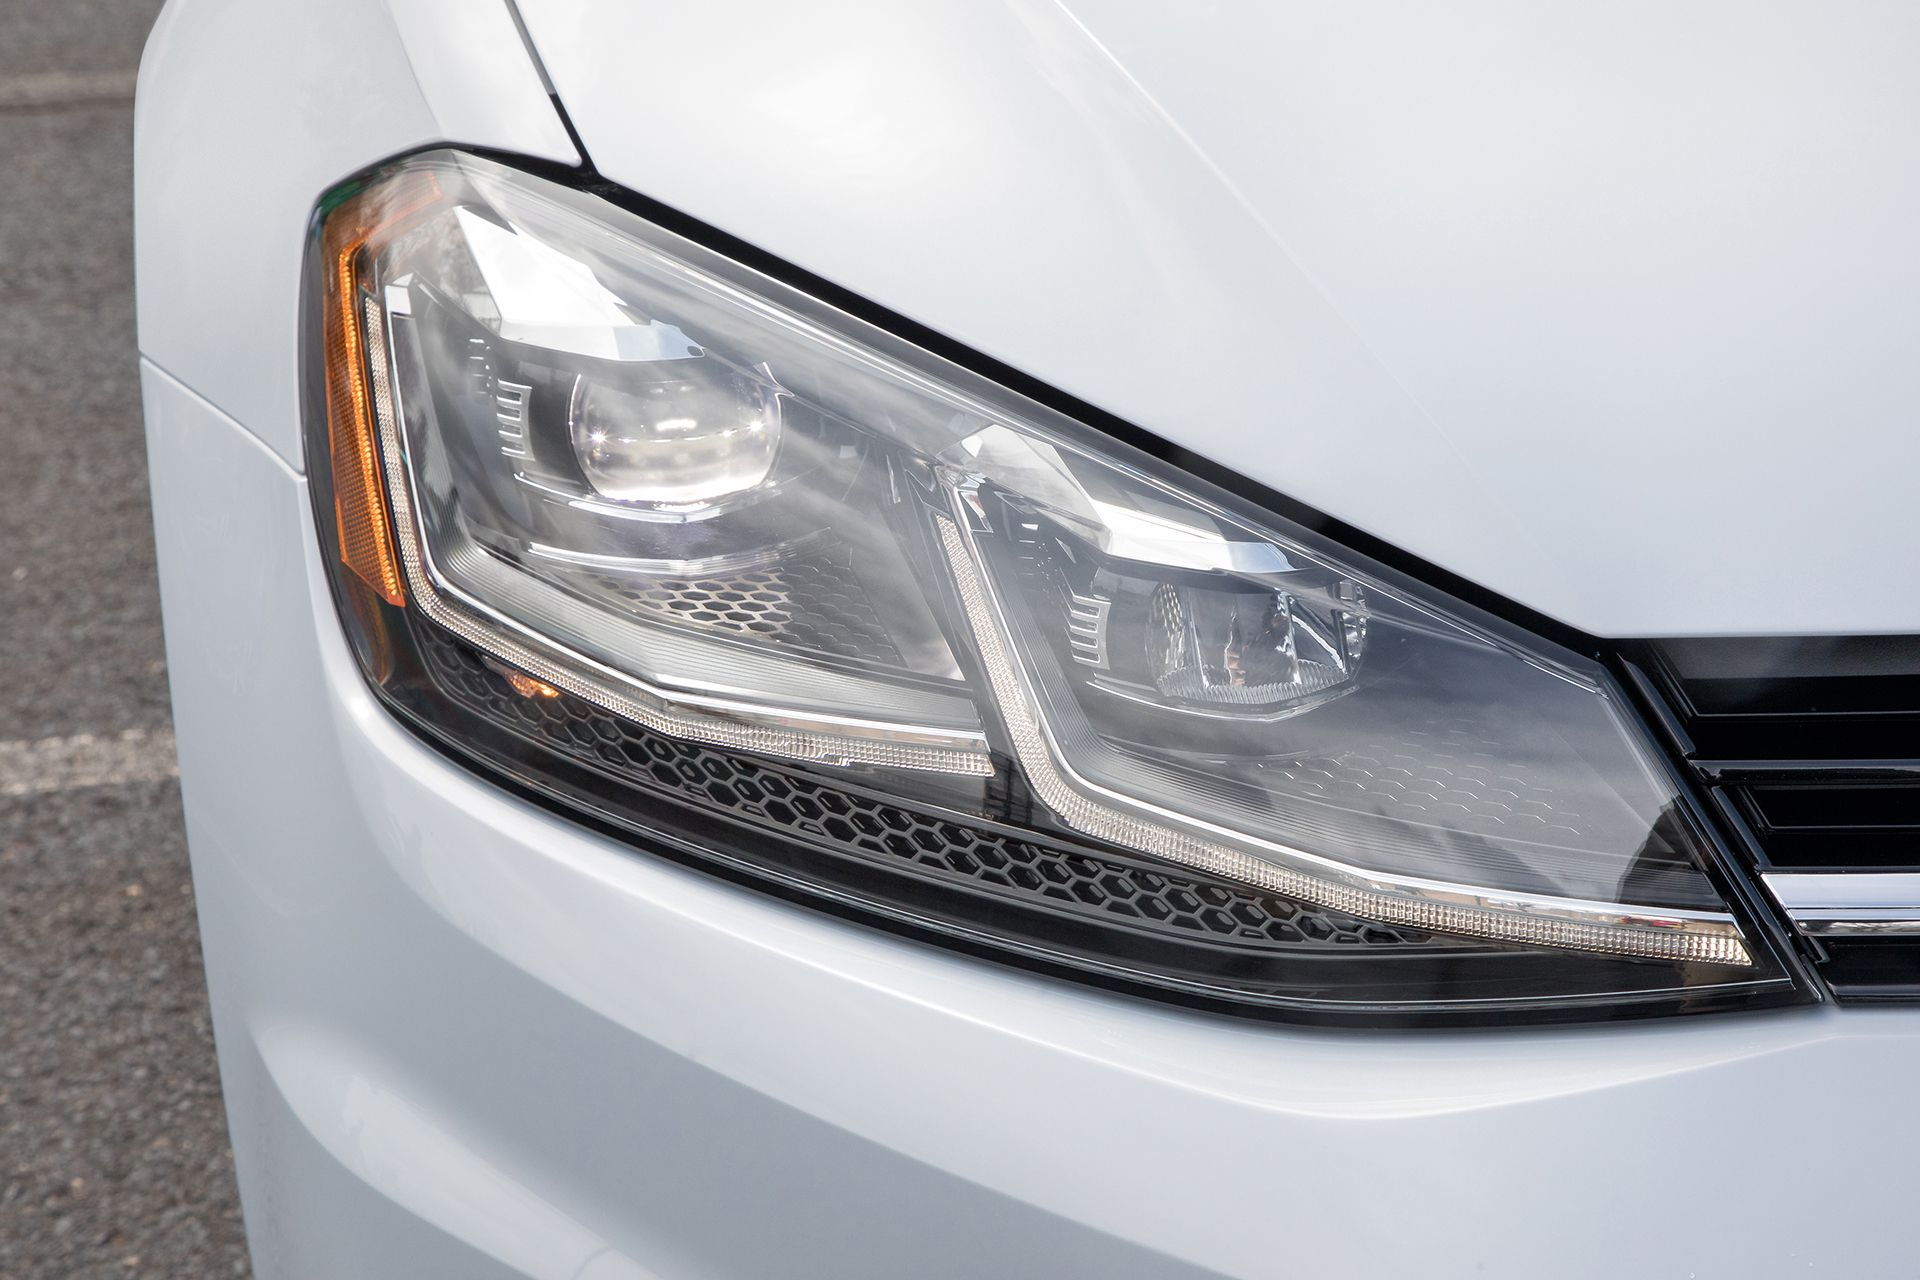 2018 VW Golf SportWagen - led headlights